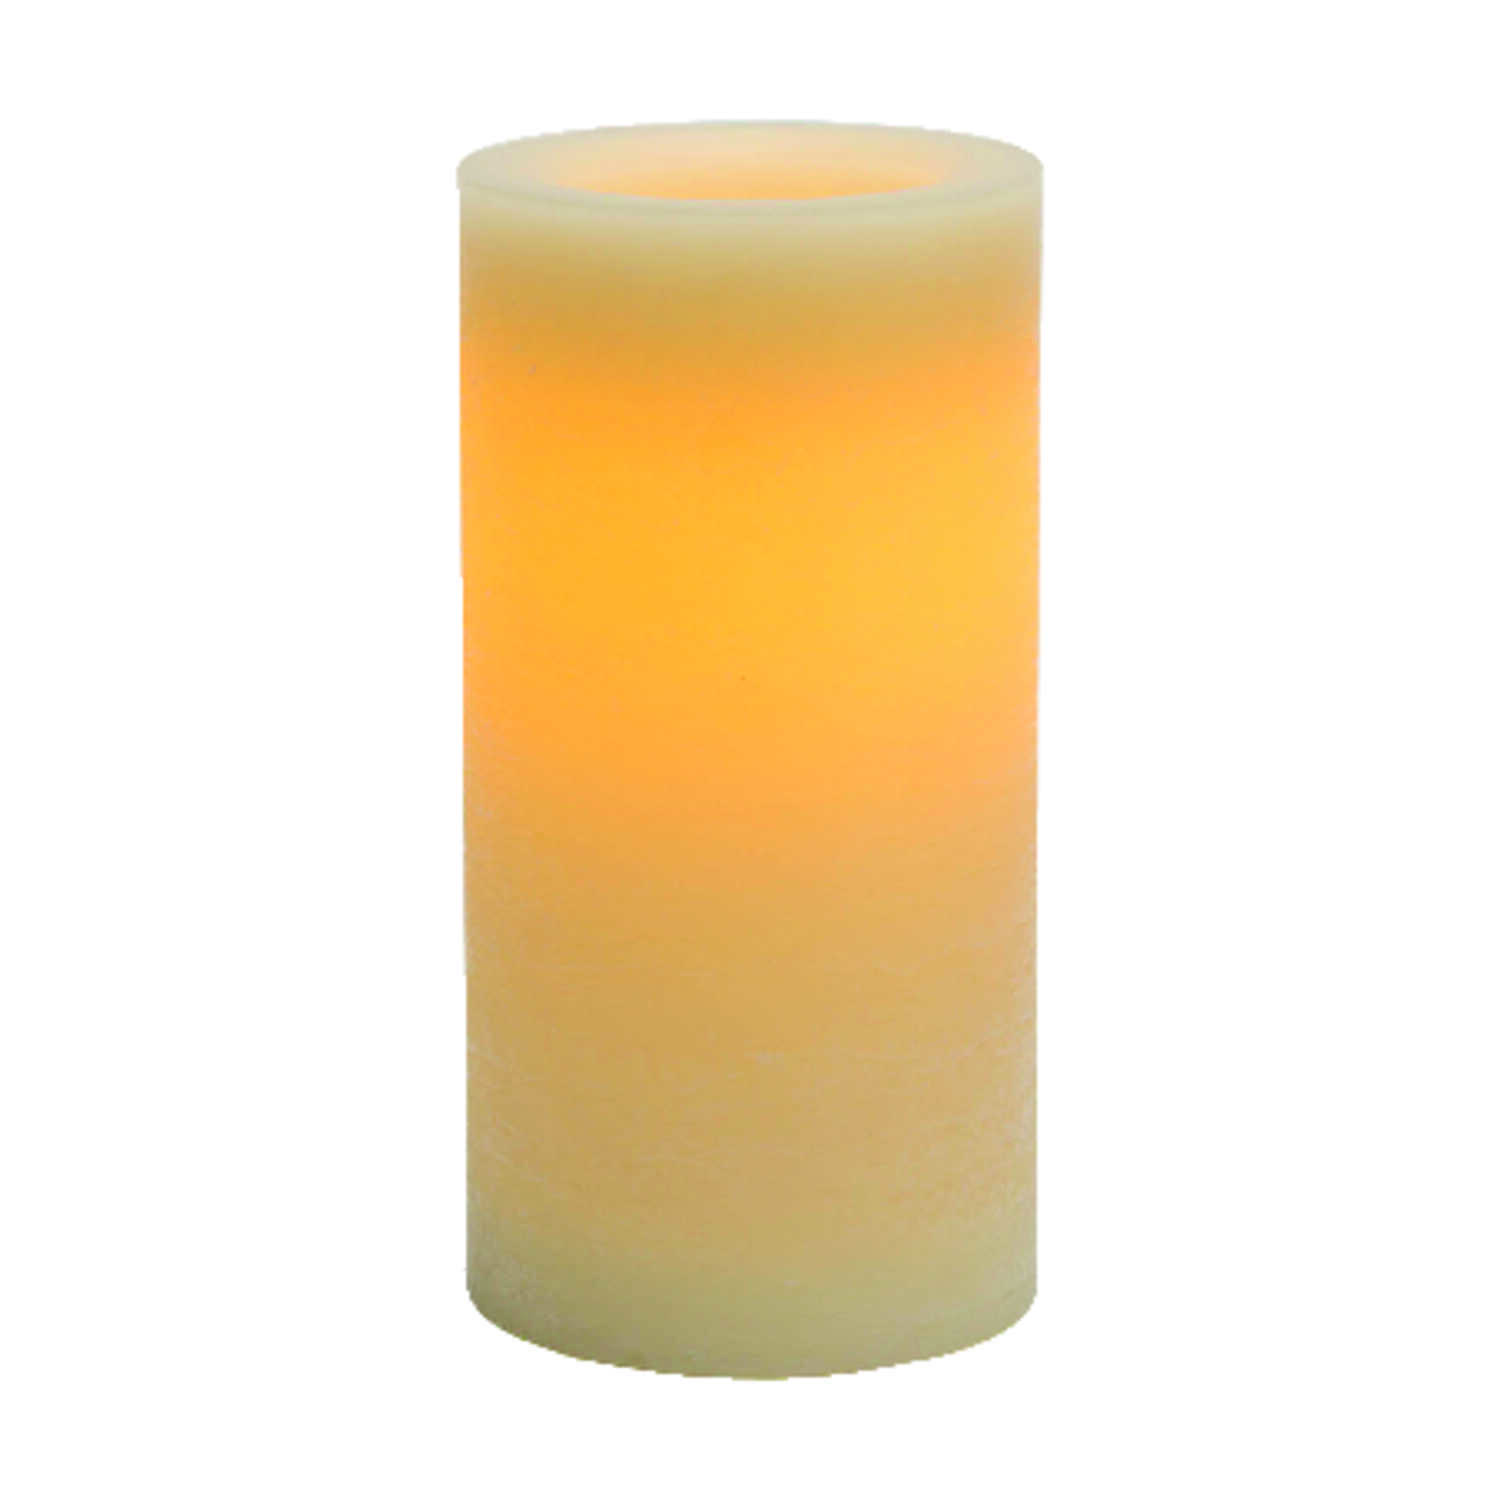 Inglow  Butter Cream  Vanilla Scent Pillar  Candle  8 in. H x 4 in. Dia.